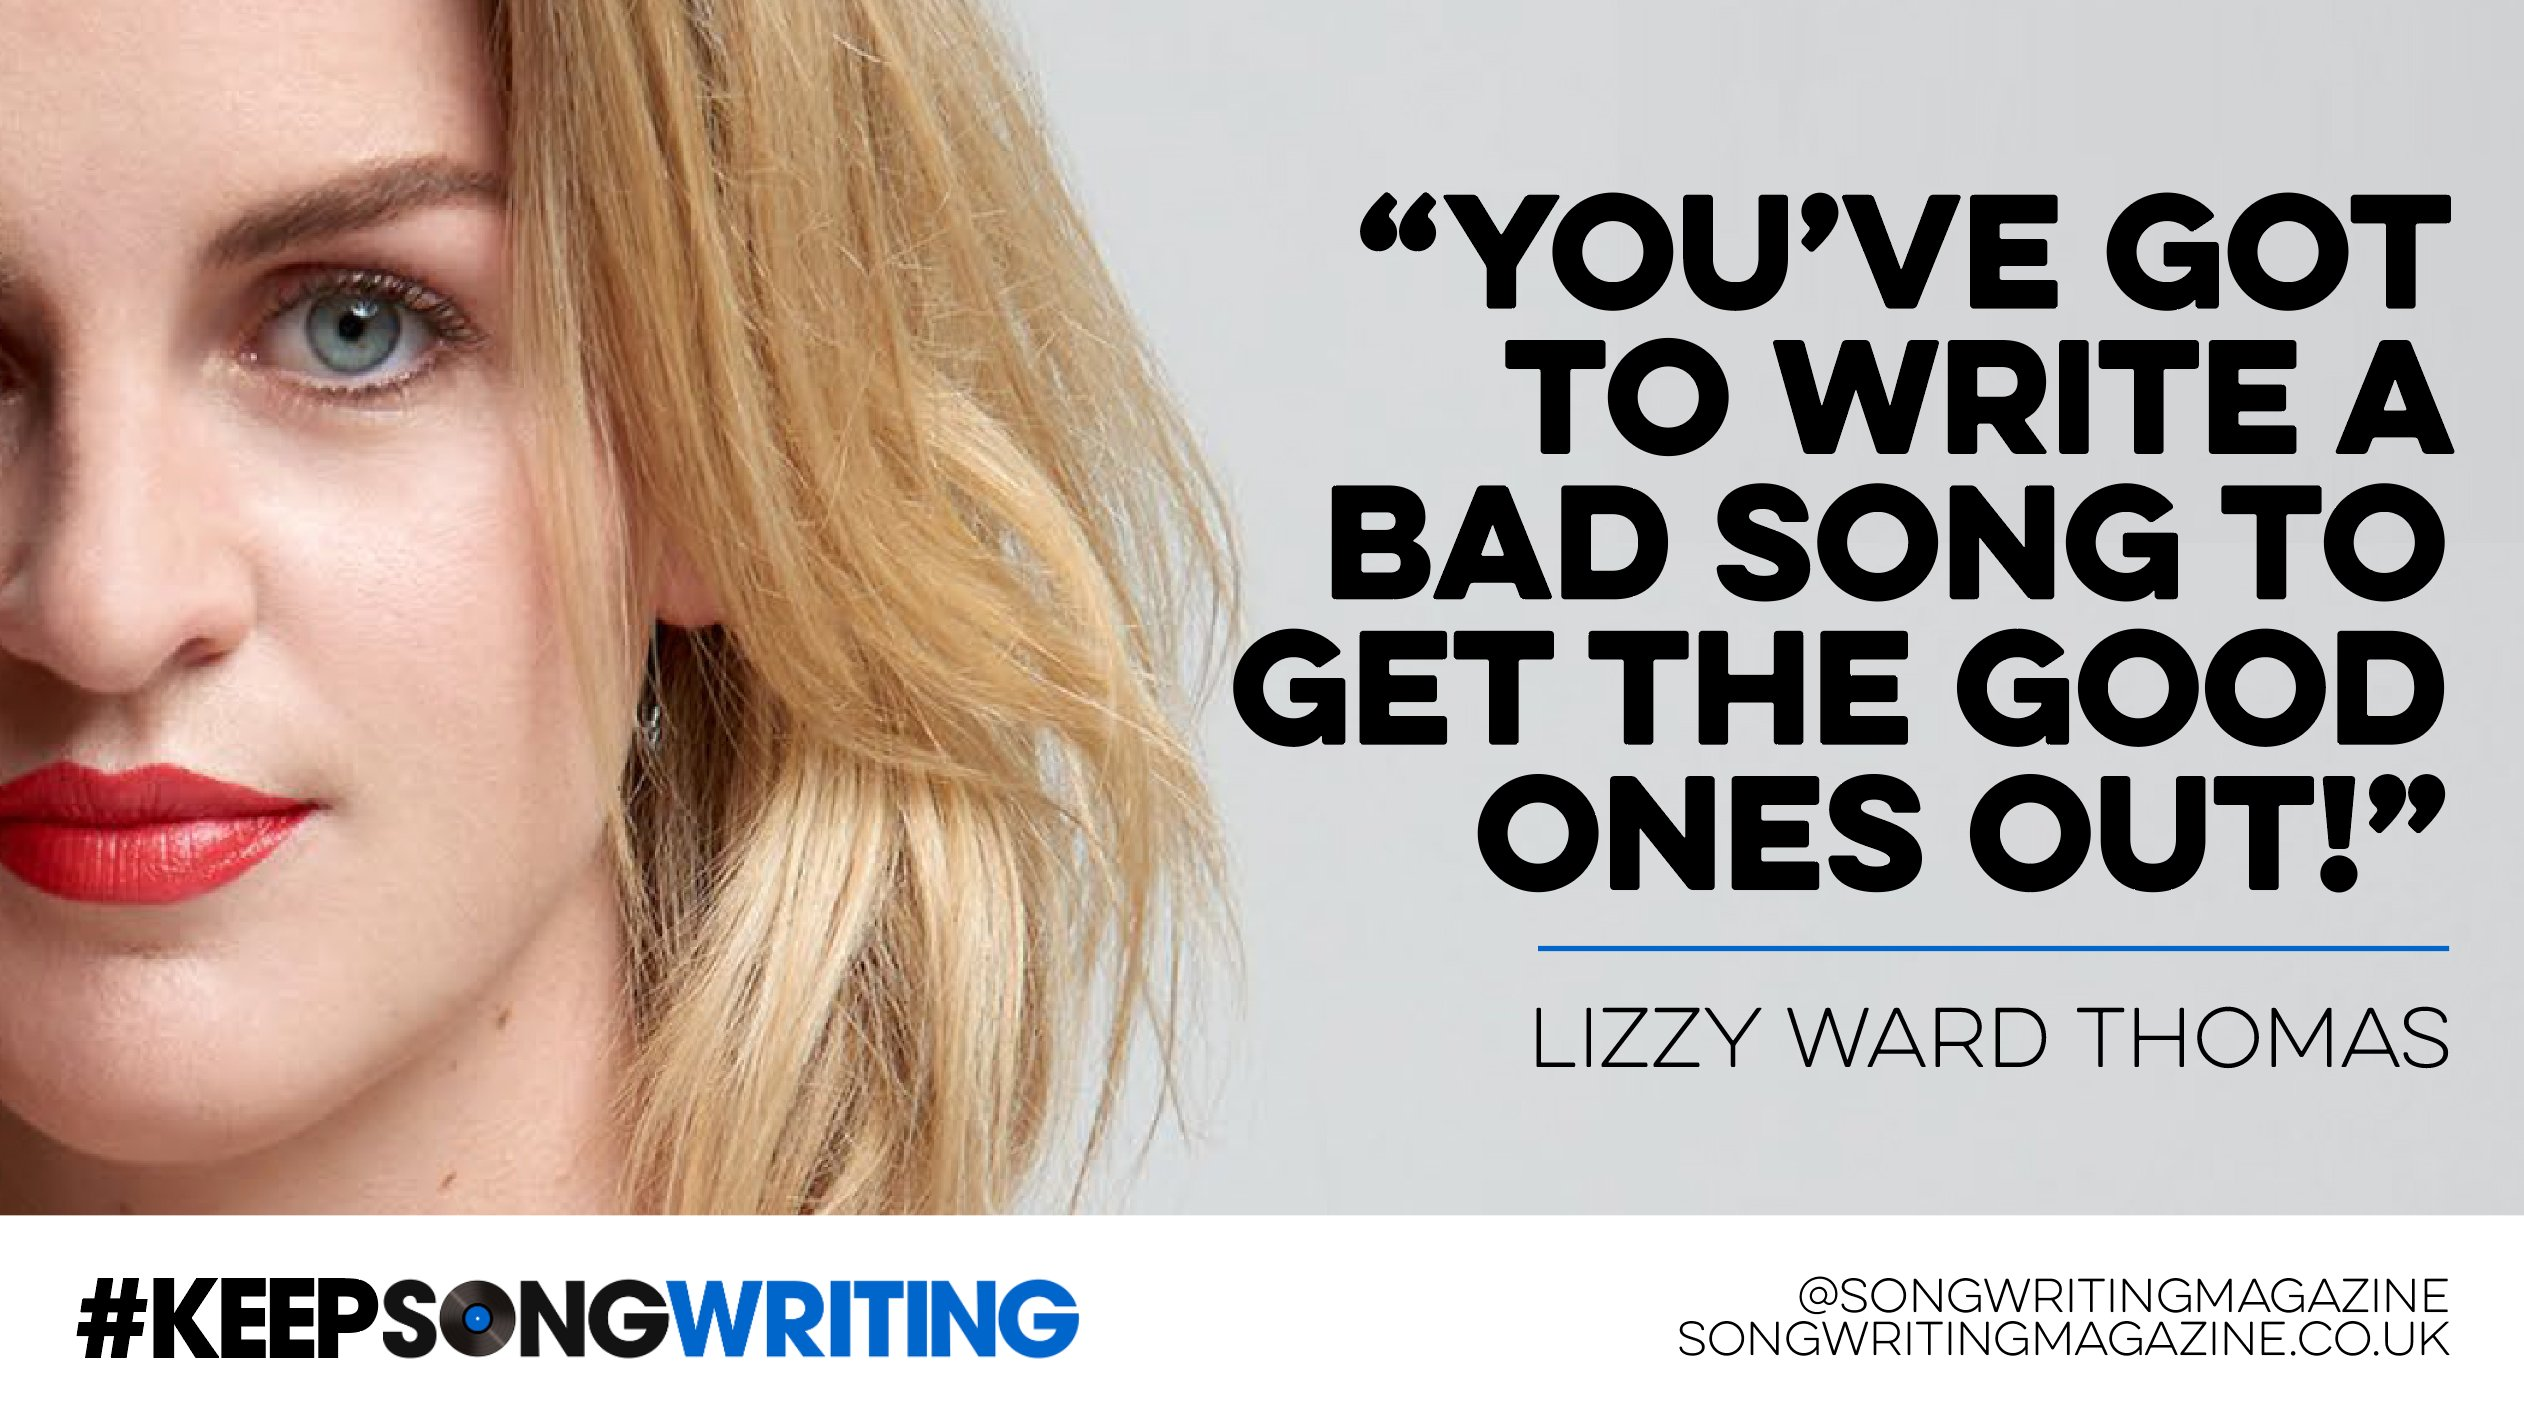 """You've got to write a bad song...-youve-got-write-bad-song-get-good-ones-out-jpg"